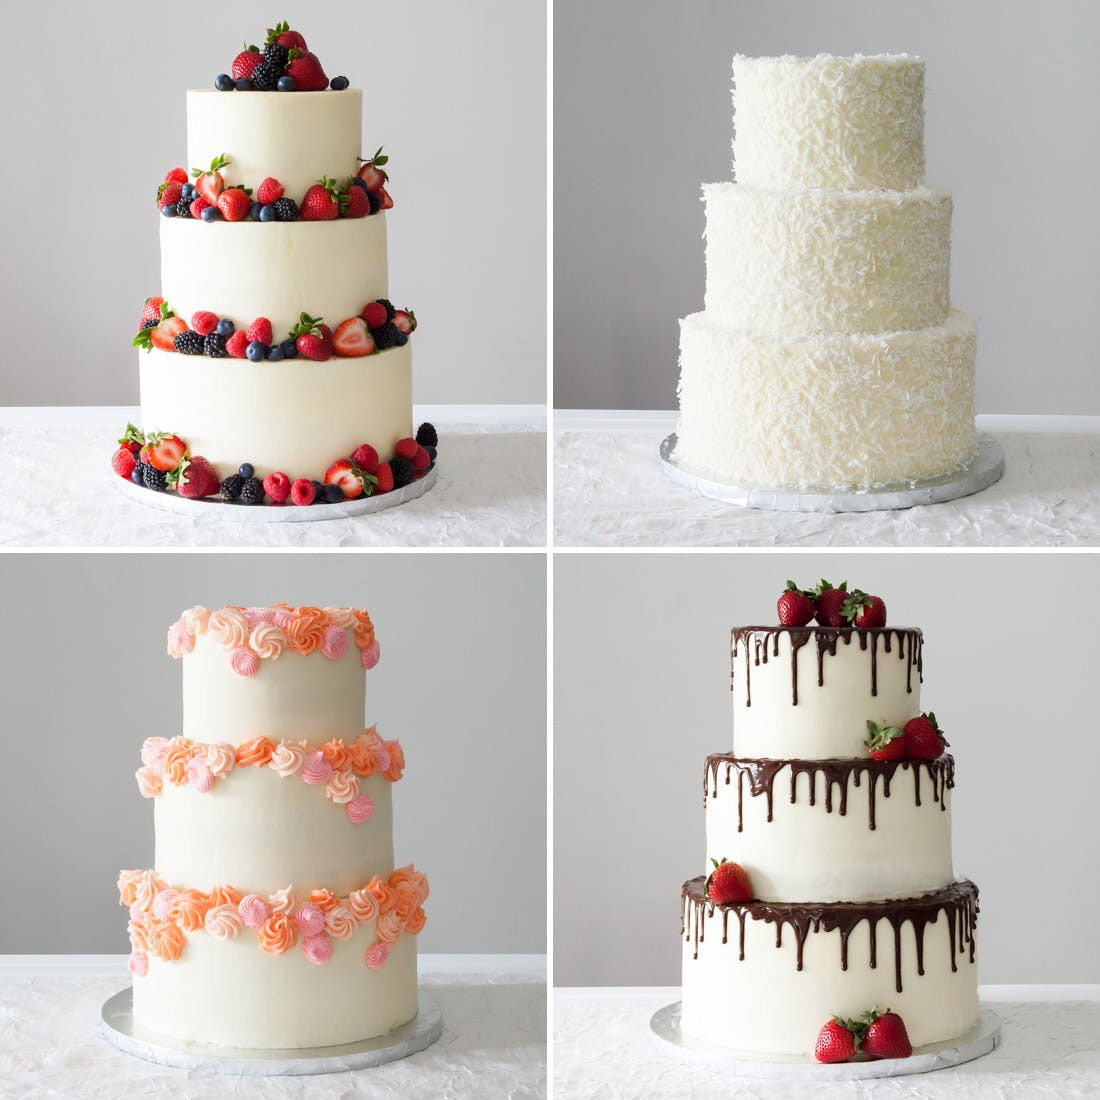 Best ideas about DIY Wedding Cakes . Save or Pin 4 Easy Ways to DIY a Wedding Cake Now.